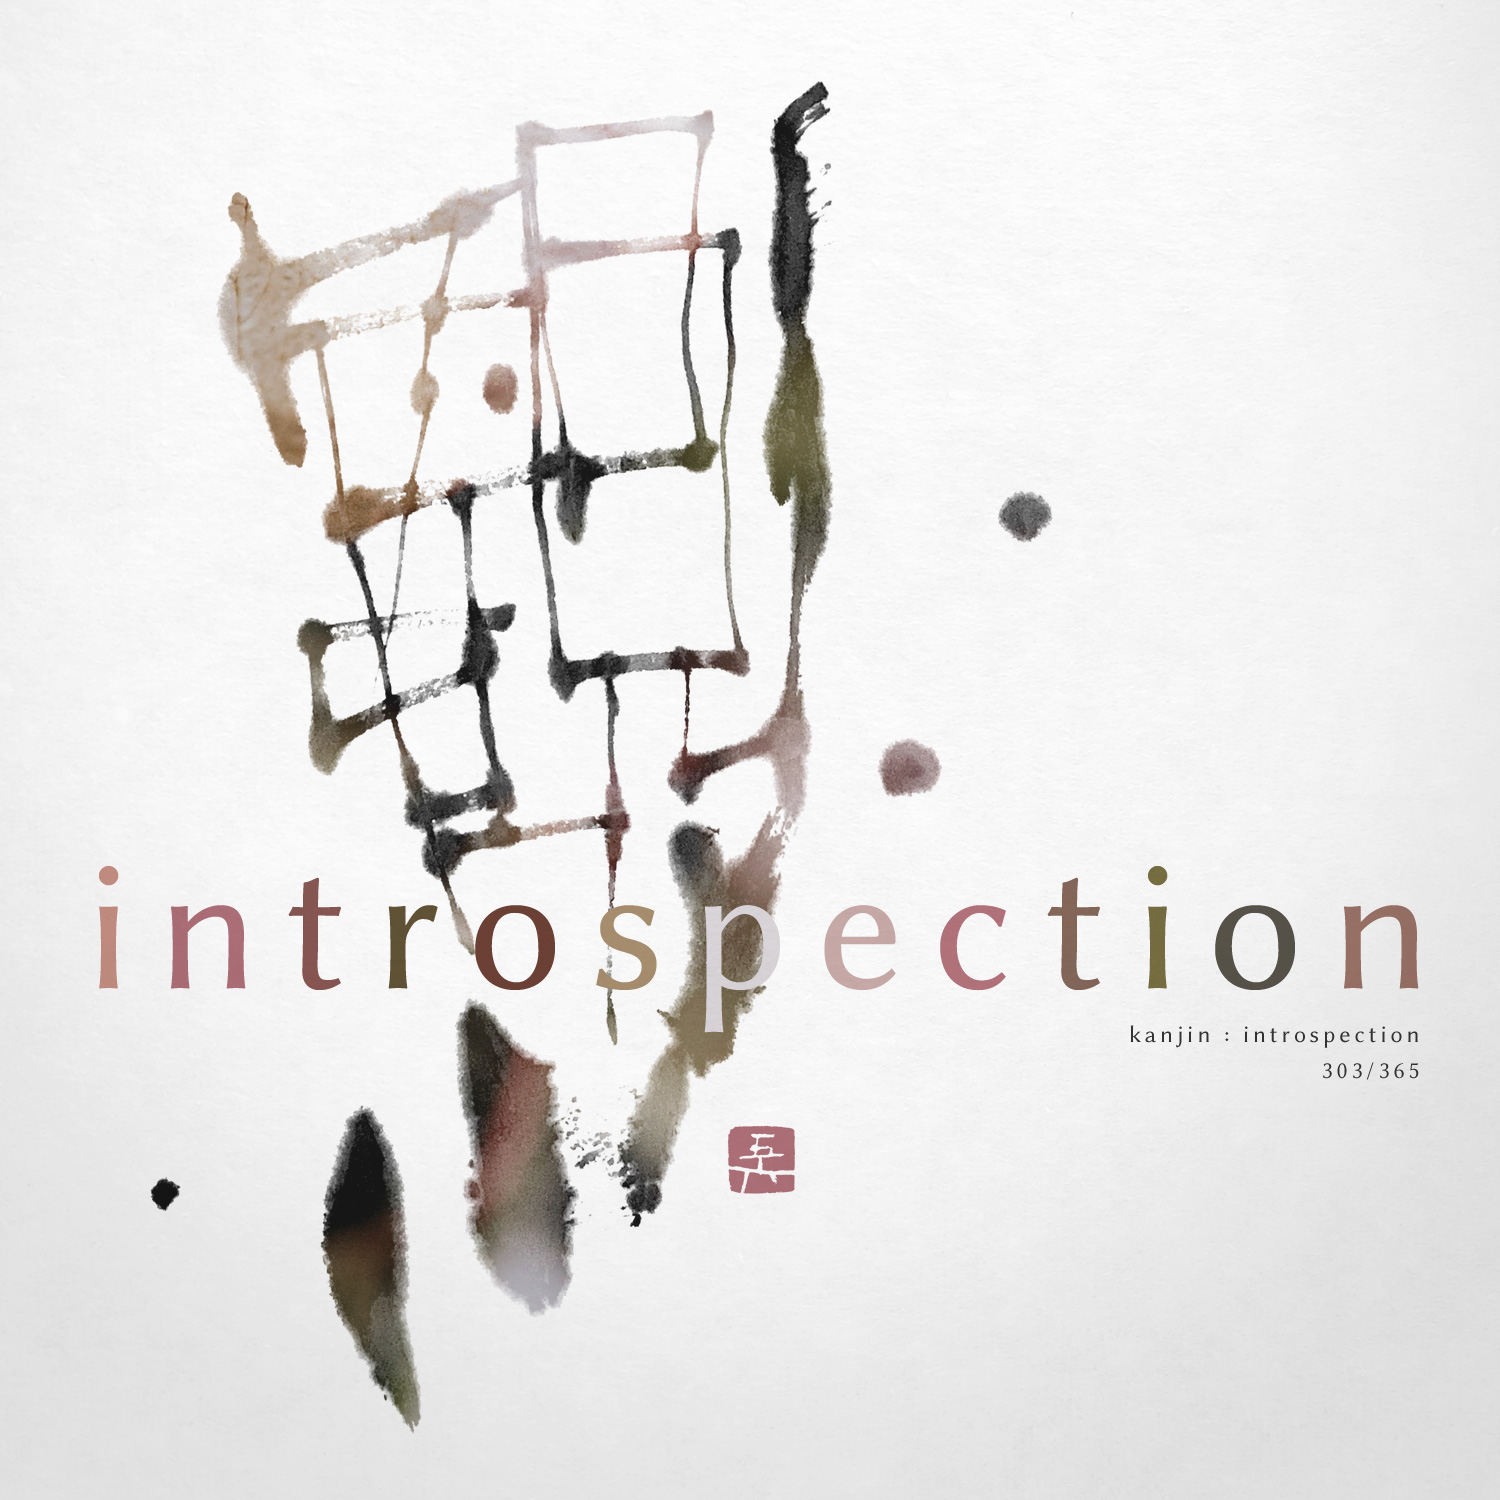 観心 | introspection 書道作品 japaneseart japanese calligraphy 書家 田川悟郎 Goroh Tagawa